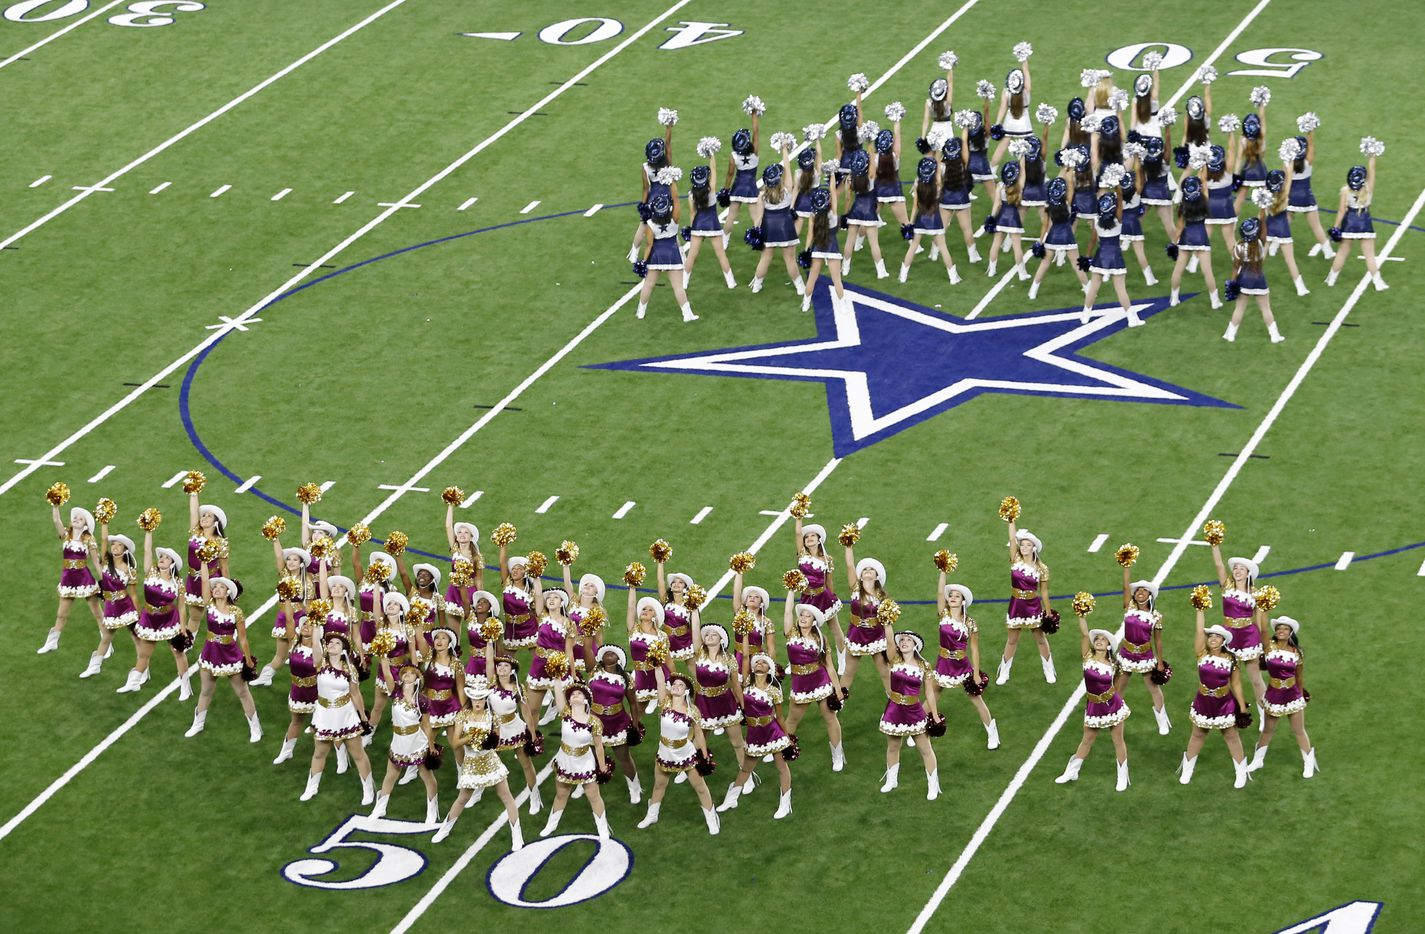 Heritage High School and Lone Star High School perform simultaneously during halftime during the second of four games played at The Star in Frisco on Saturday, August 27, 2016. (Vernon Bryant/The Dallas Morning News)